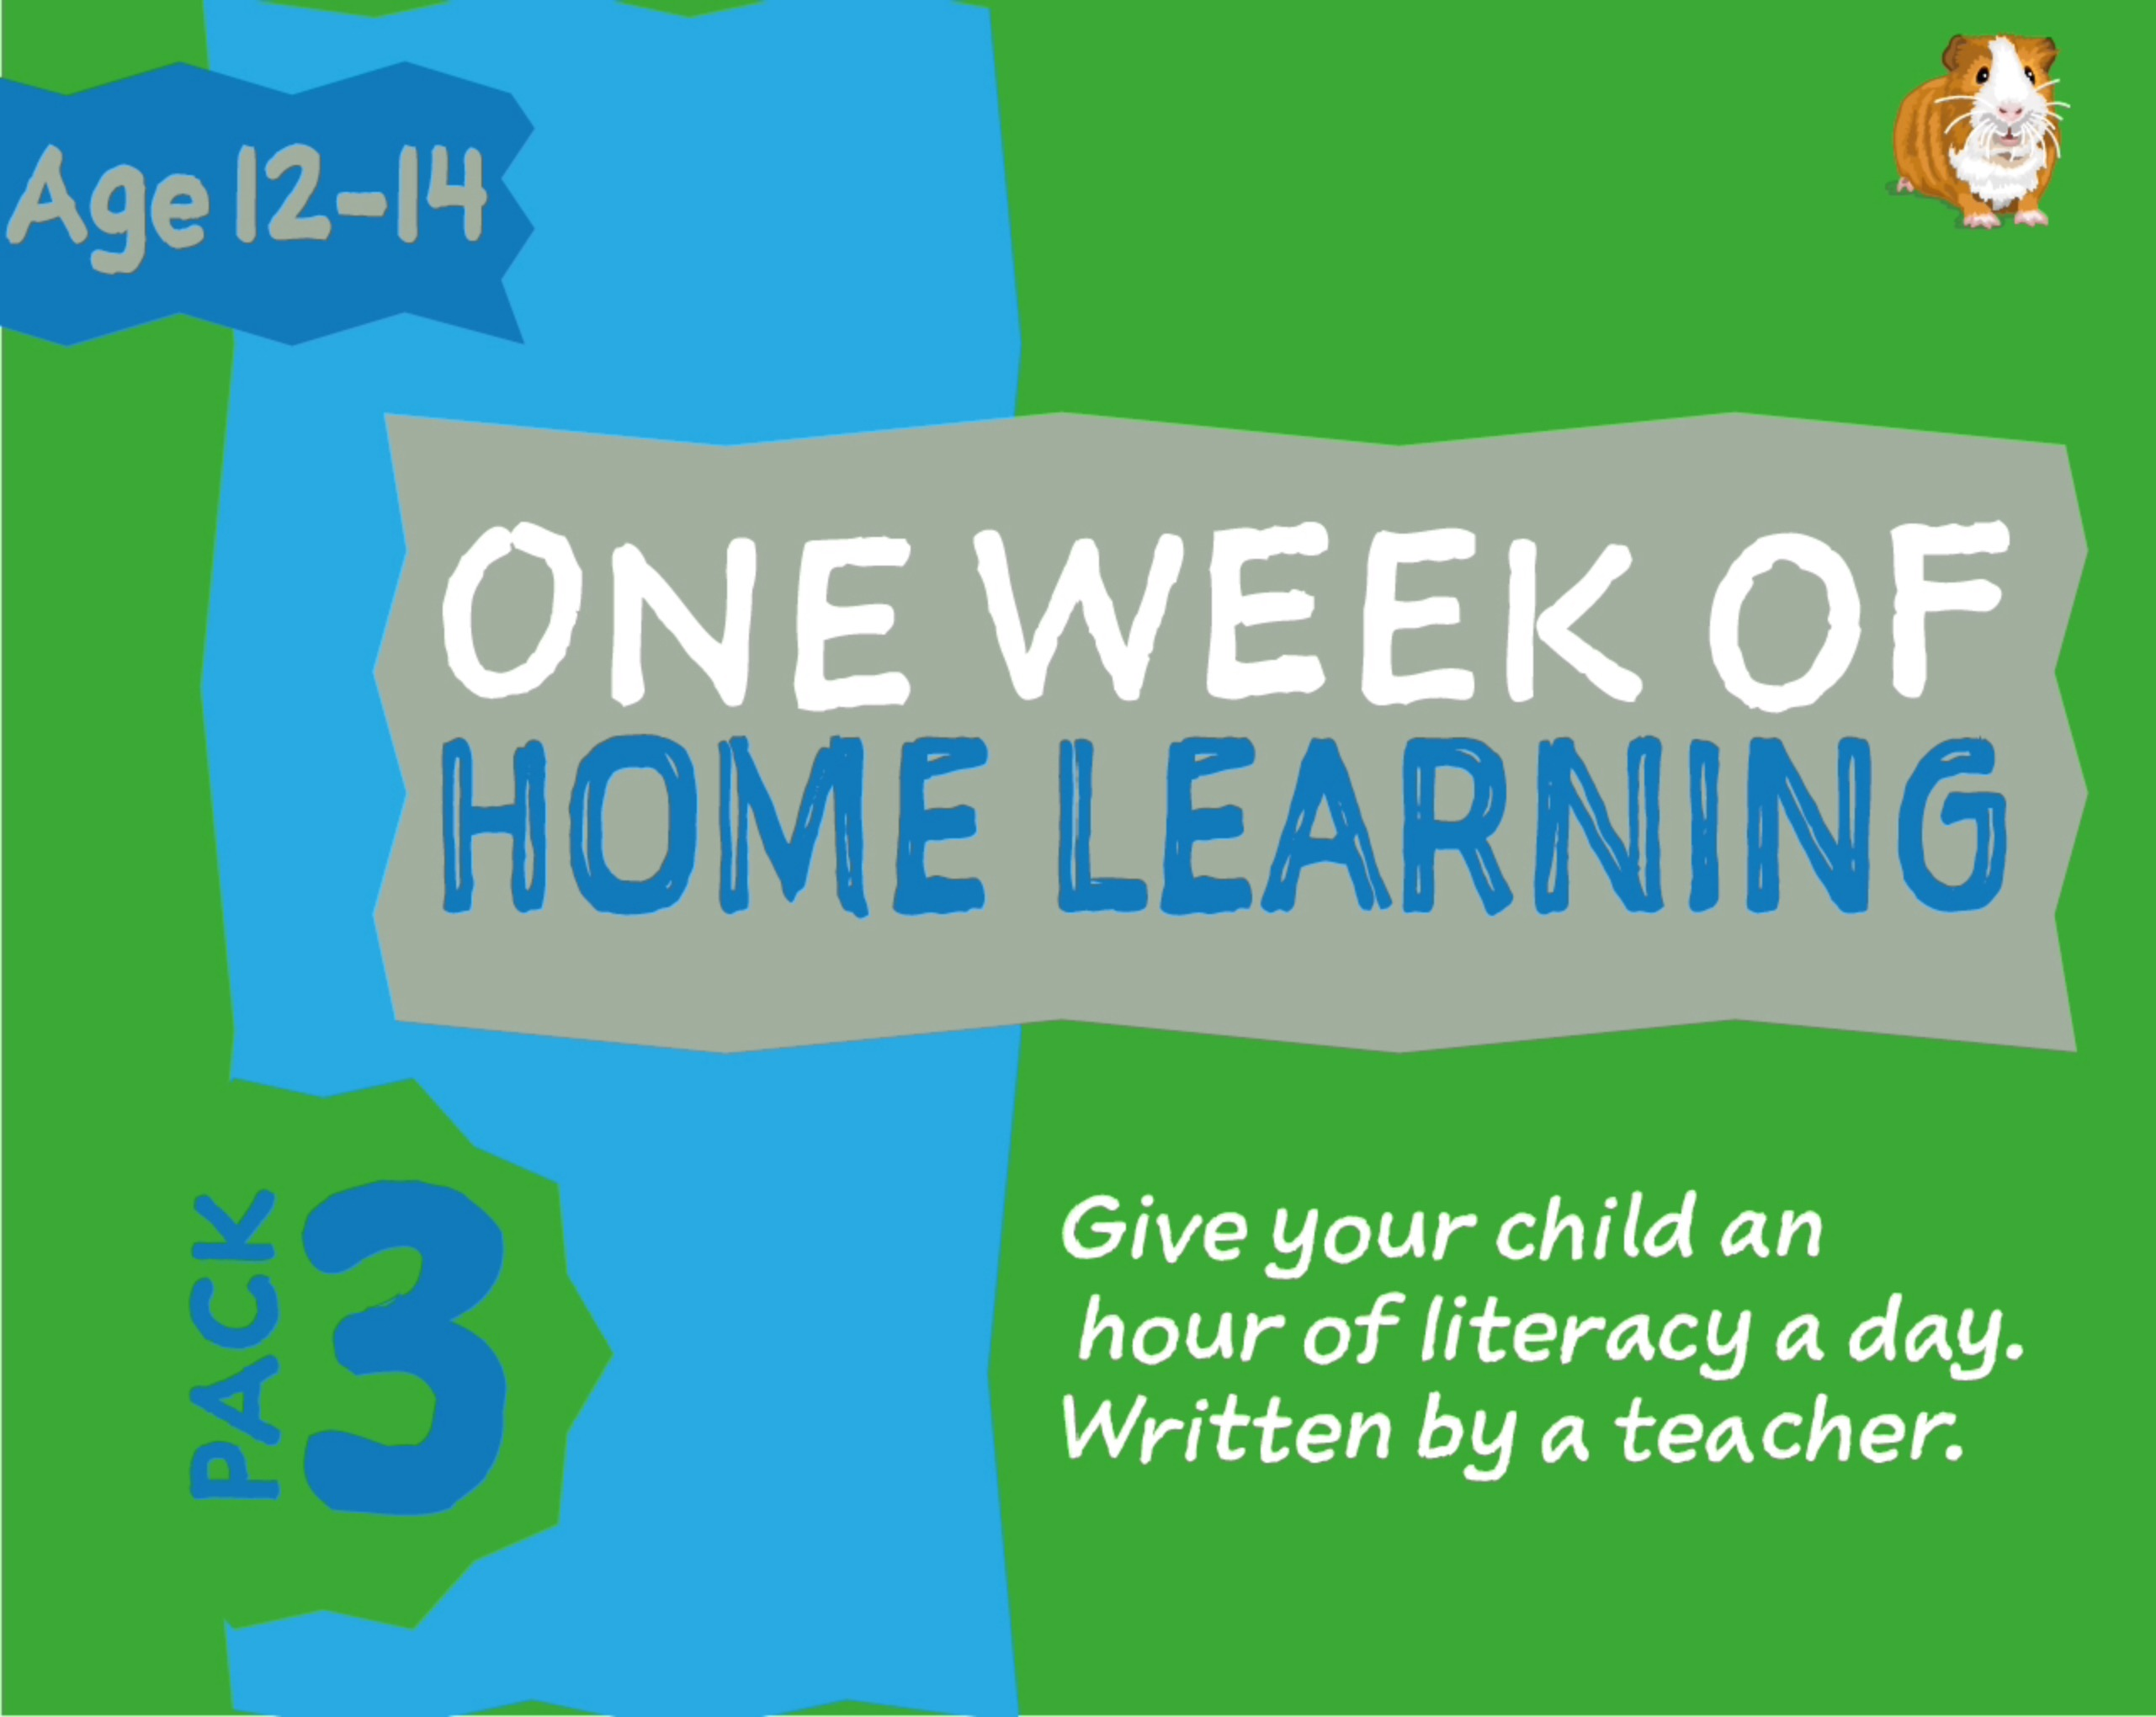 1 WEEK Literacy Distance Learning: Pack THREE (age 12-14 years) Grades 6-8